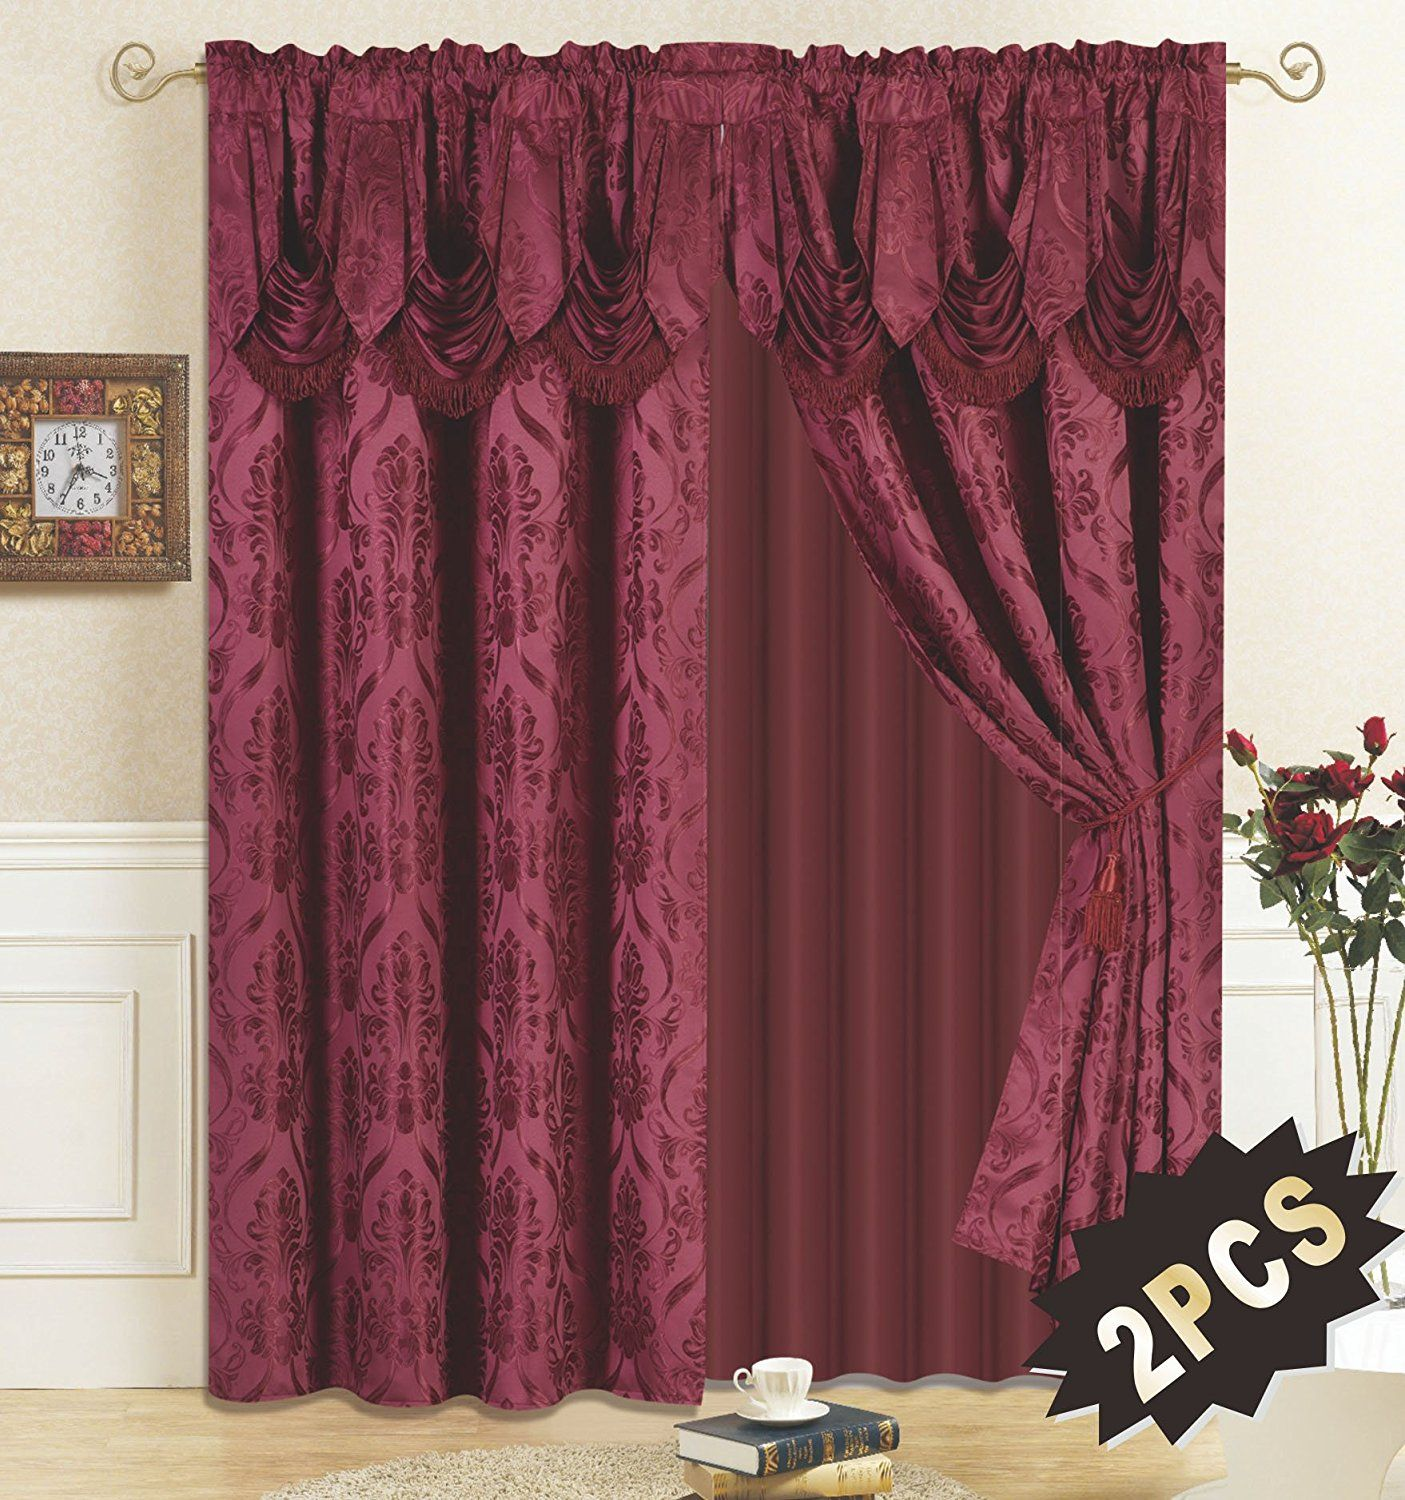 All American Collection New 4 Piece Drape Set with Attached Valance and Sheer with 2 Tie Backs Included Burgundy